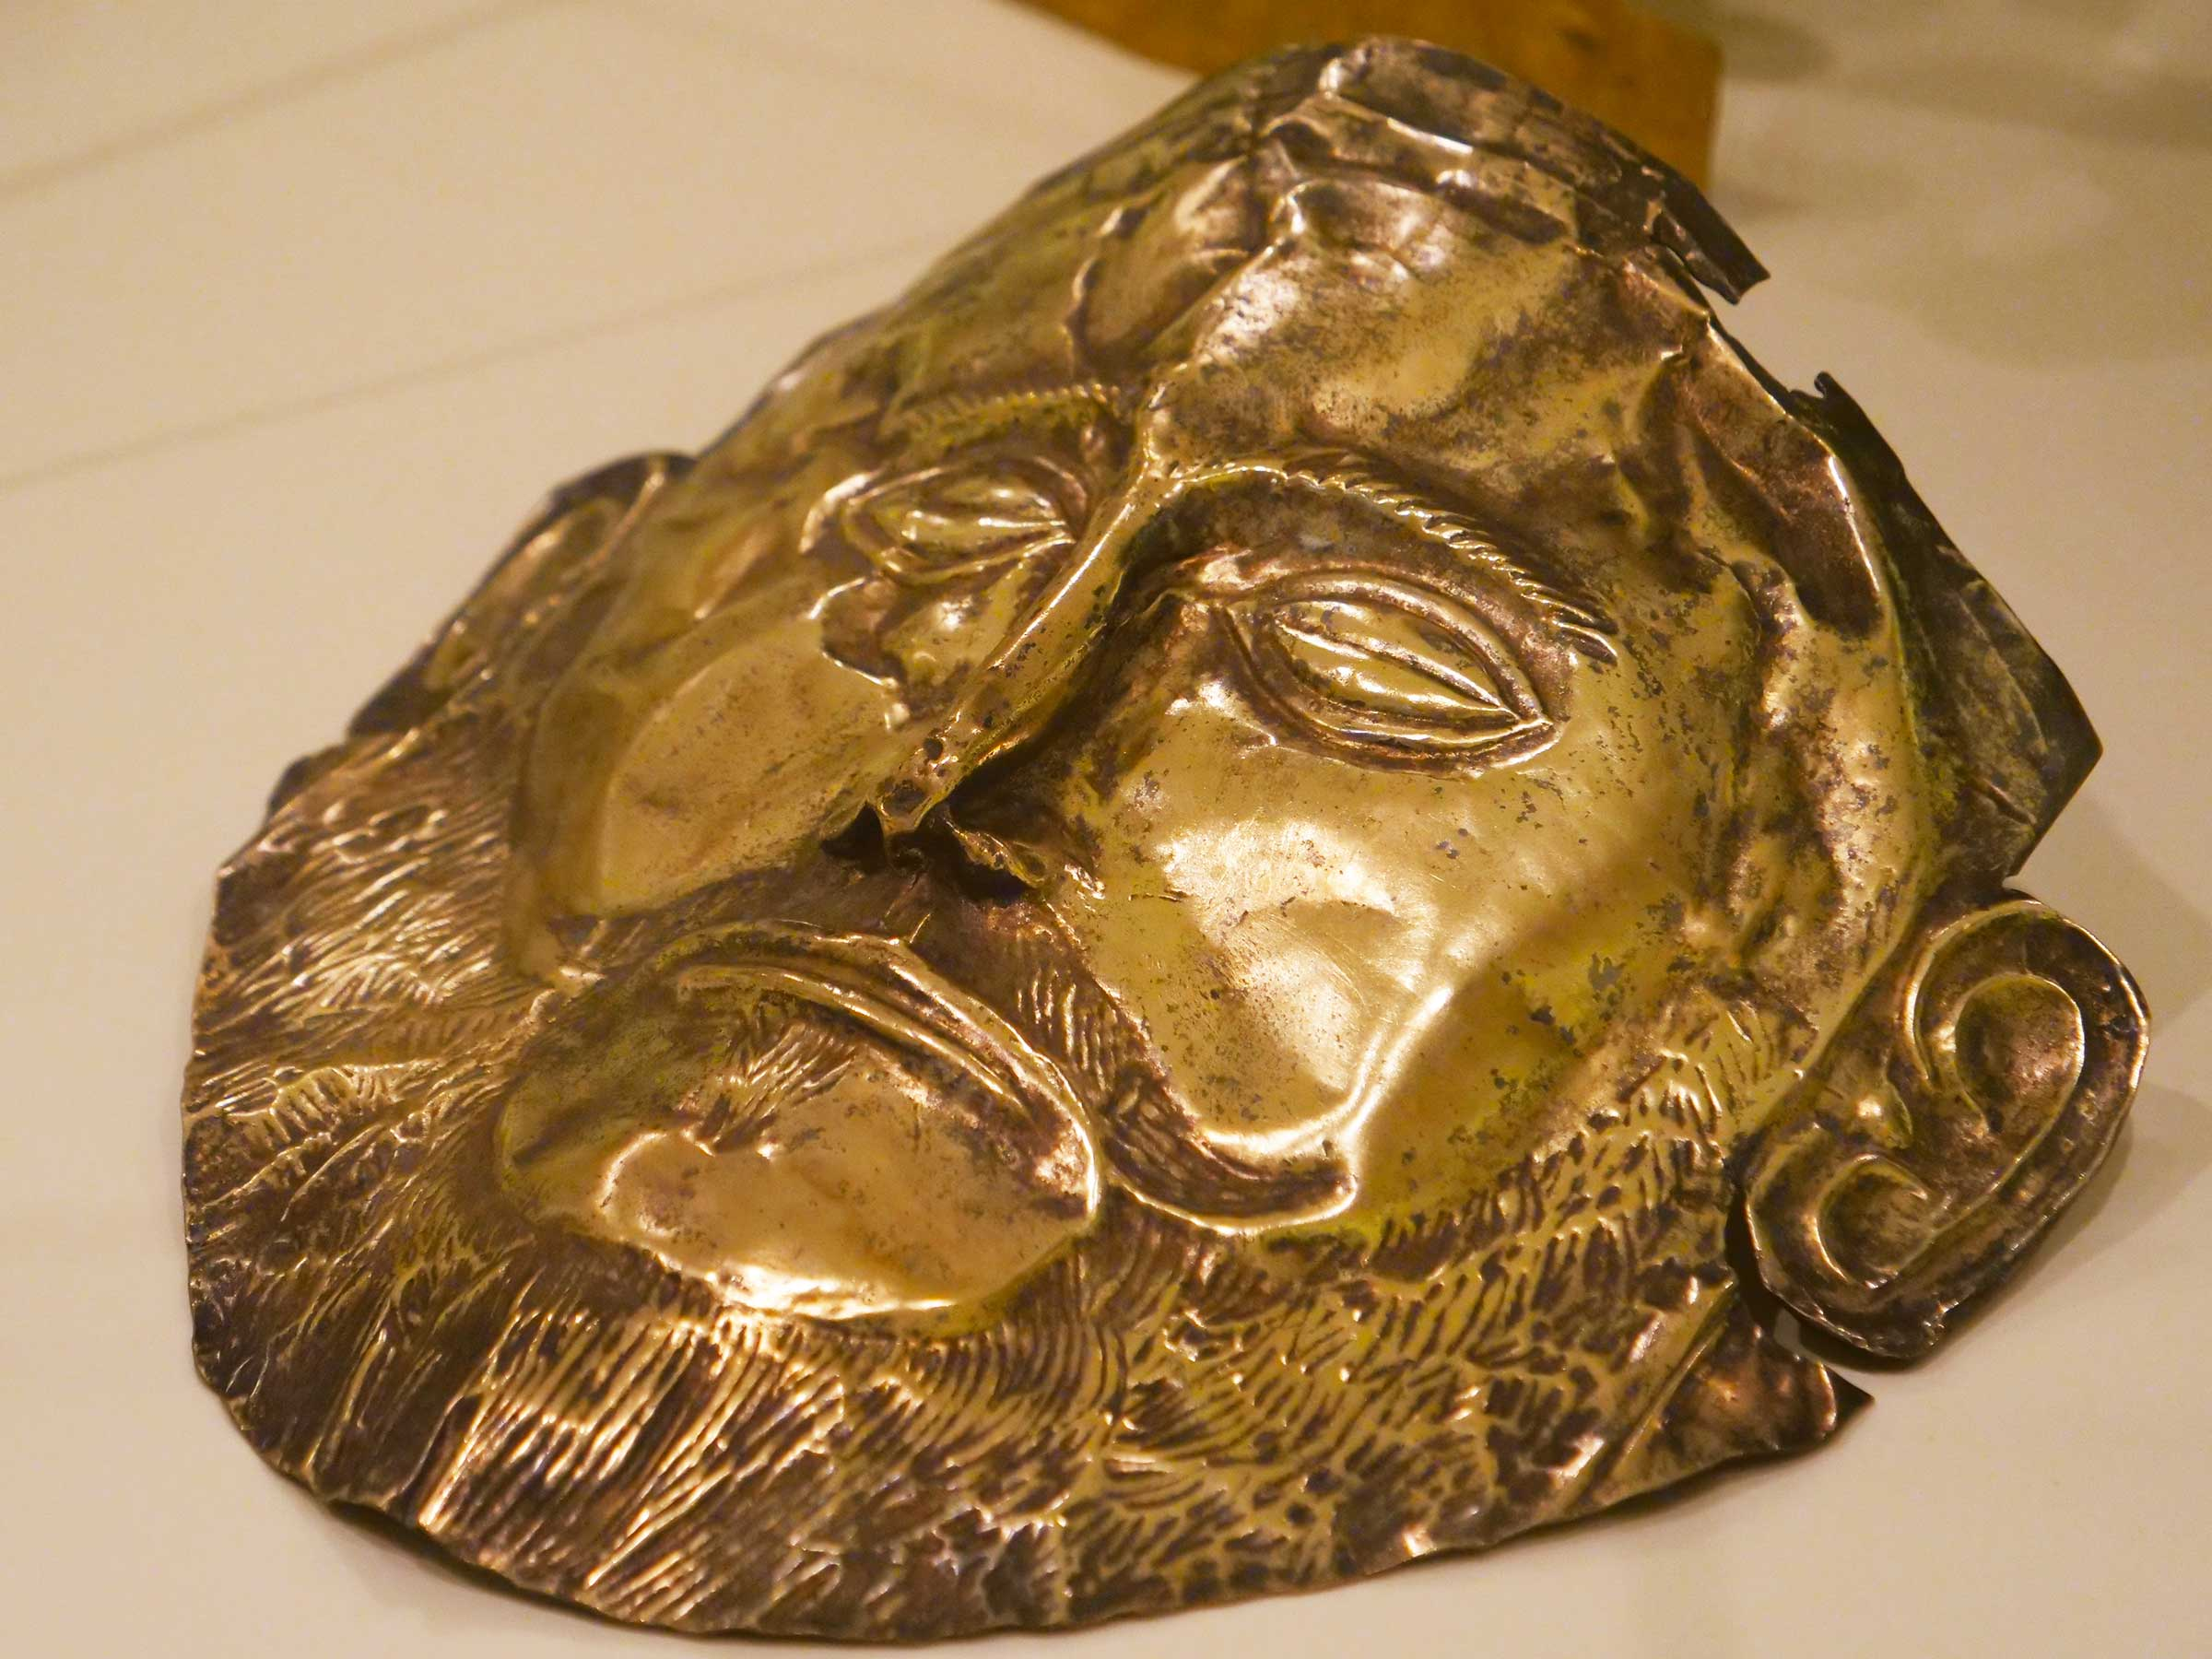 Gold Mask of Agamemnon | The Mycenaean Civilization | Bronze Age Greece | Dr Steven Andrew Martin | Greek Archaeology Research